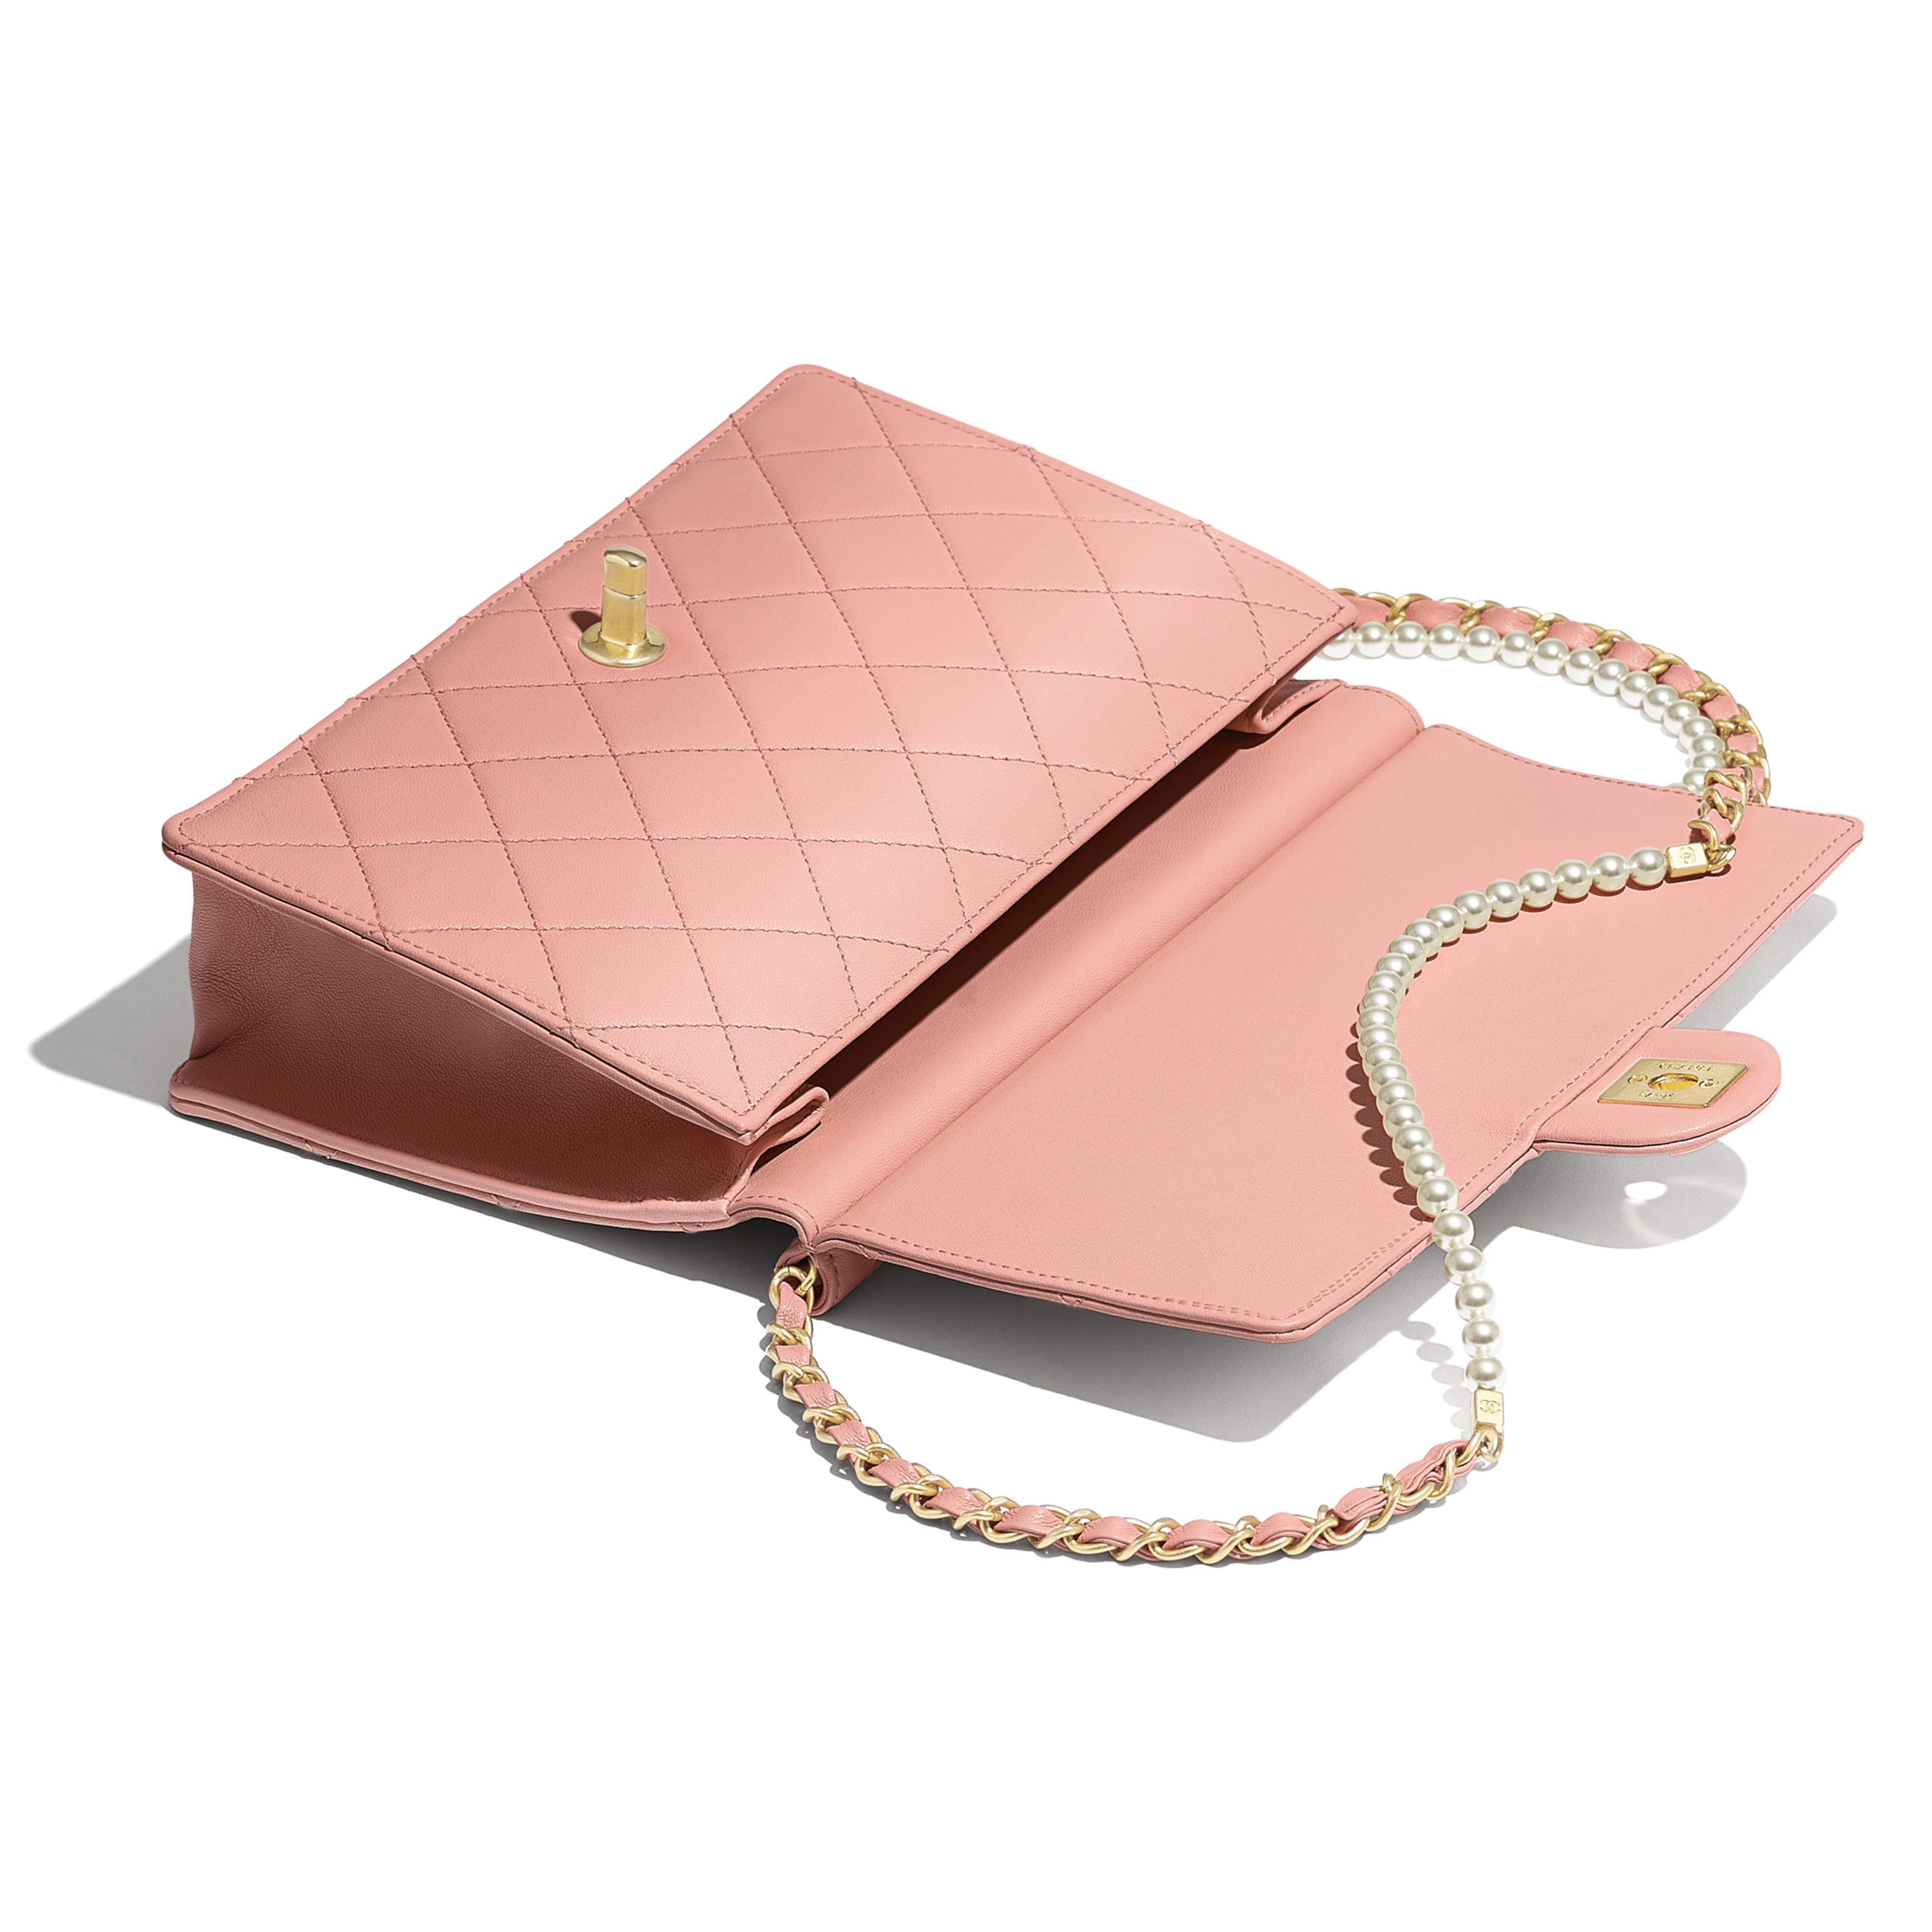 Flap Bag - Pink - Lambskin, Imitation Pearls & Gold-Tone Metal - Other view - see full sized version